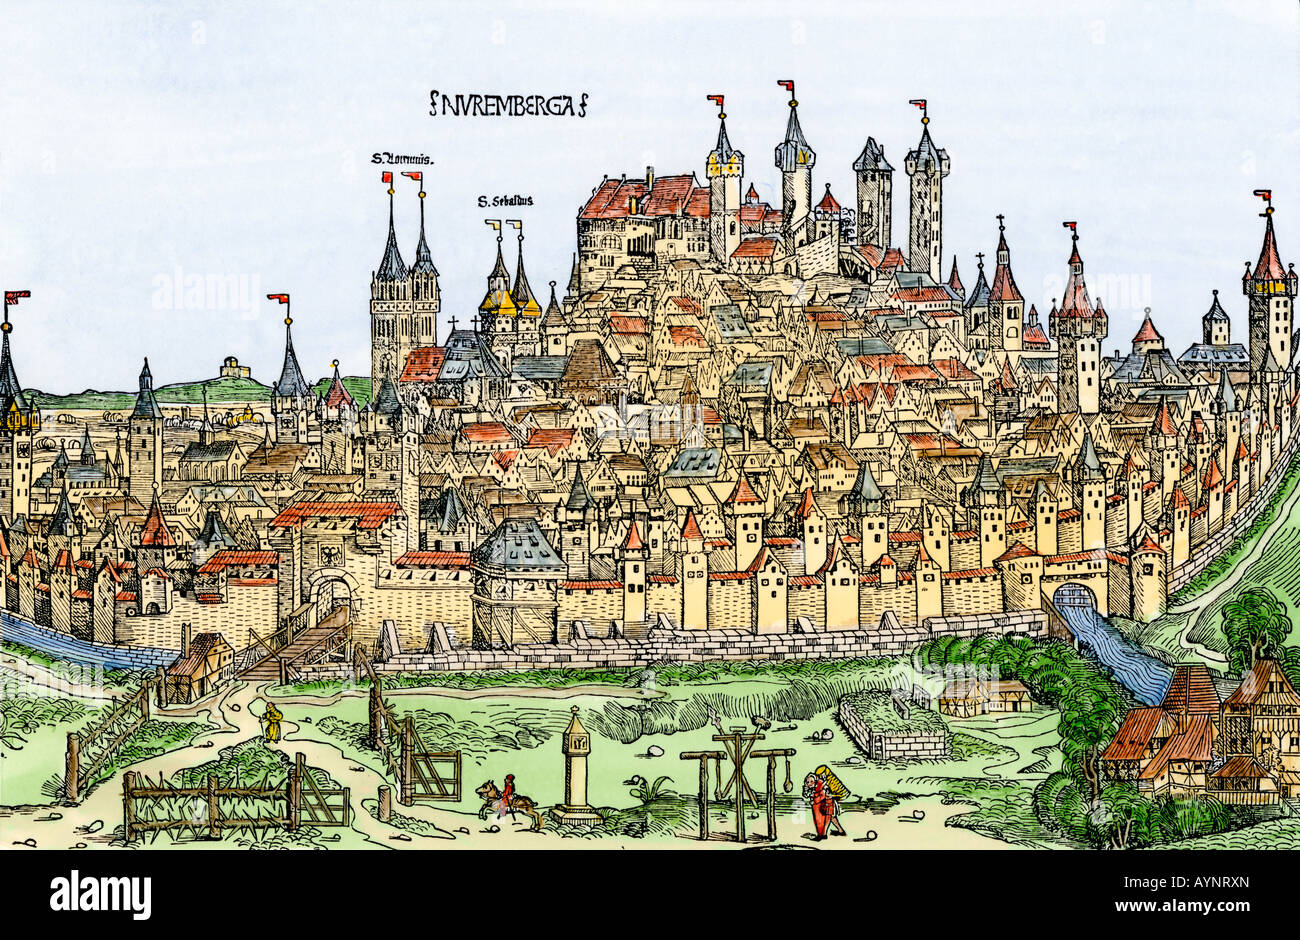 Medieval walled city of Nuremberg Germany 1400s. Hand-colored woodcut - Stock Image